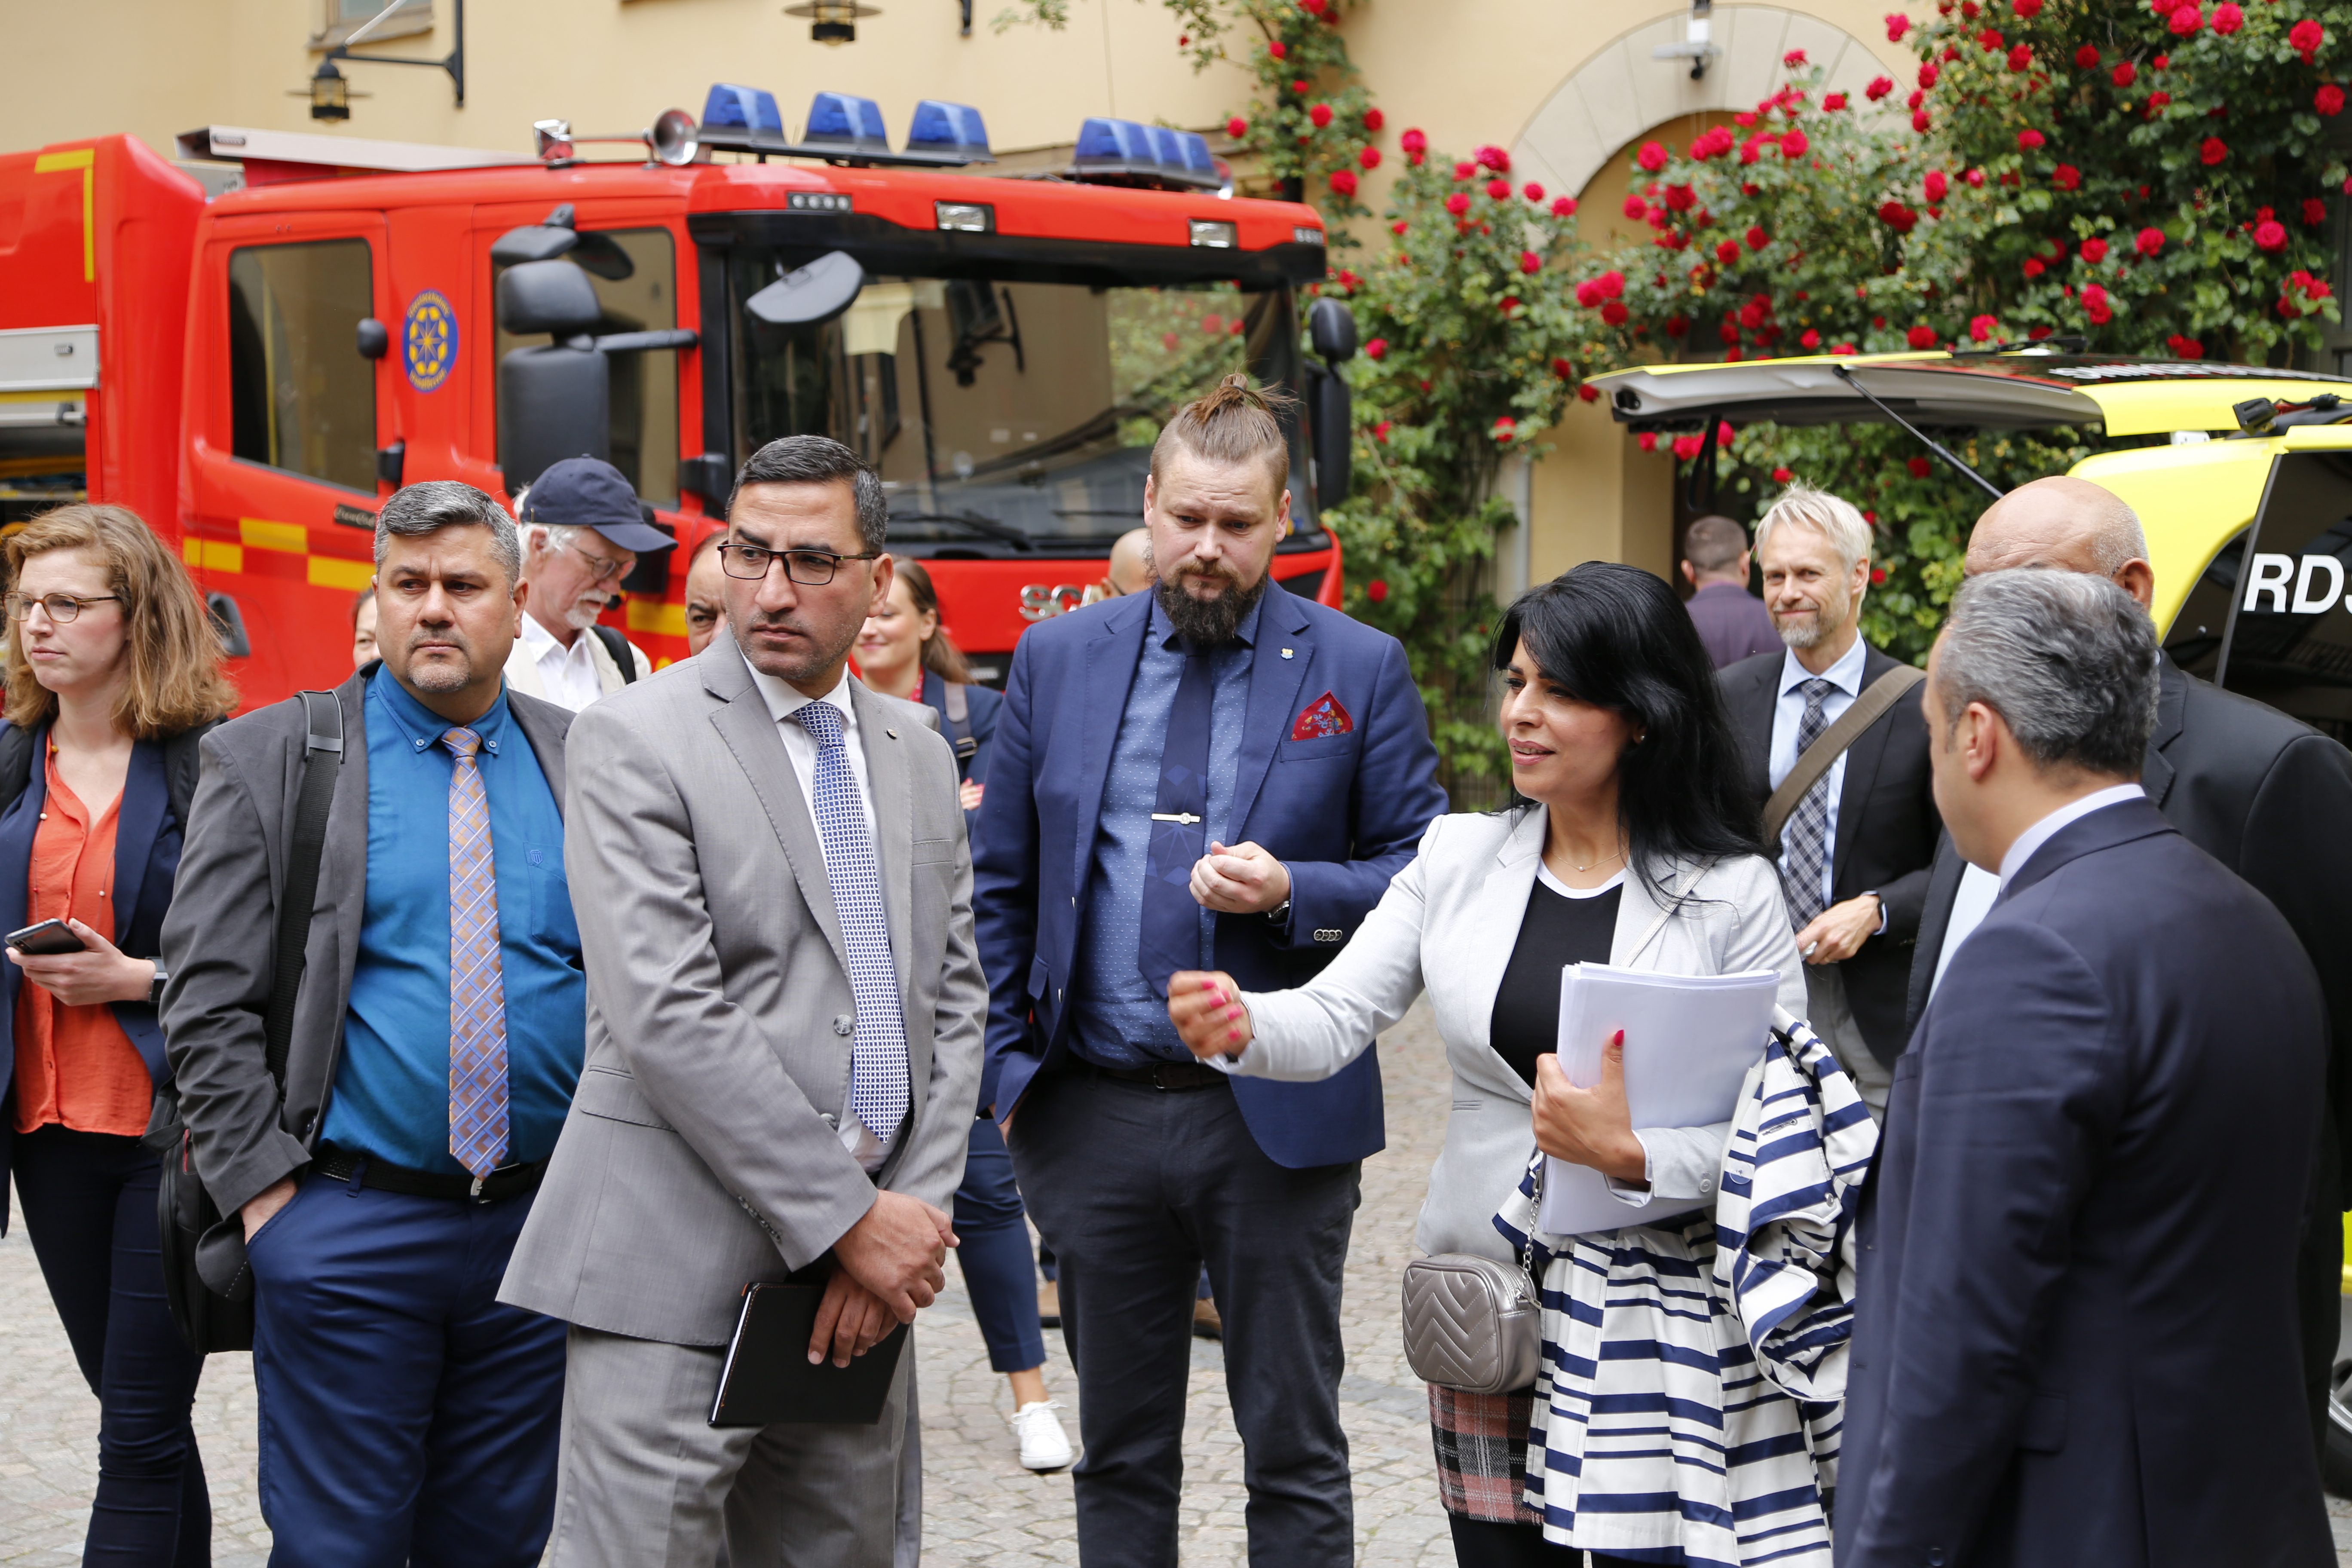 MSB's Iraqi sister agency Joint Coordination and Monitoring Centre (JCMC) and the Iraqi Civil Defense visit the Greater Stockholm Fire Brigade together with MSB, June 2019.